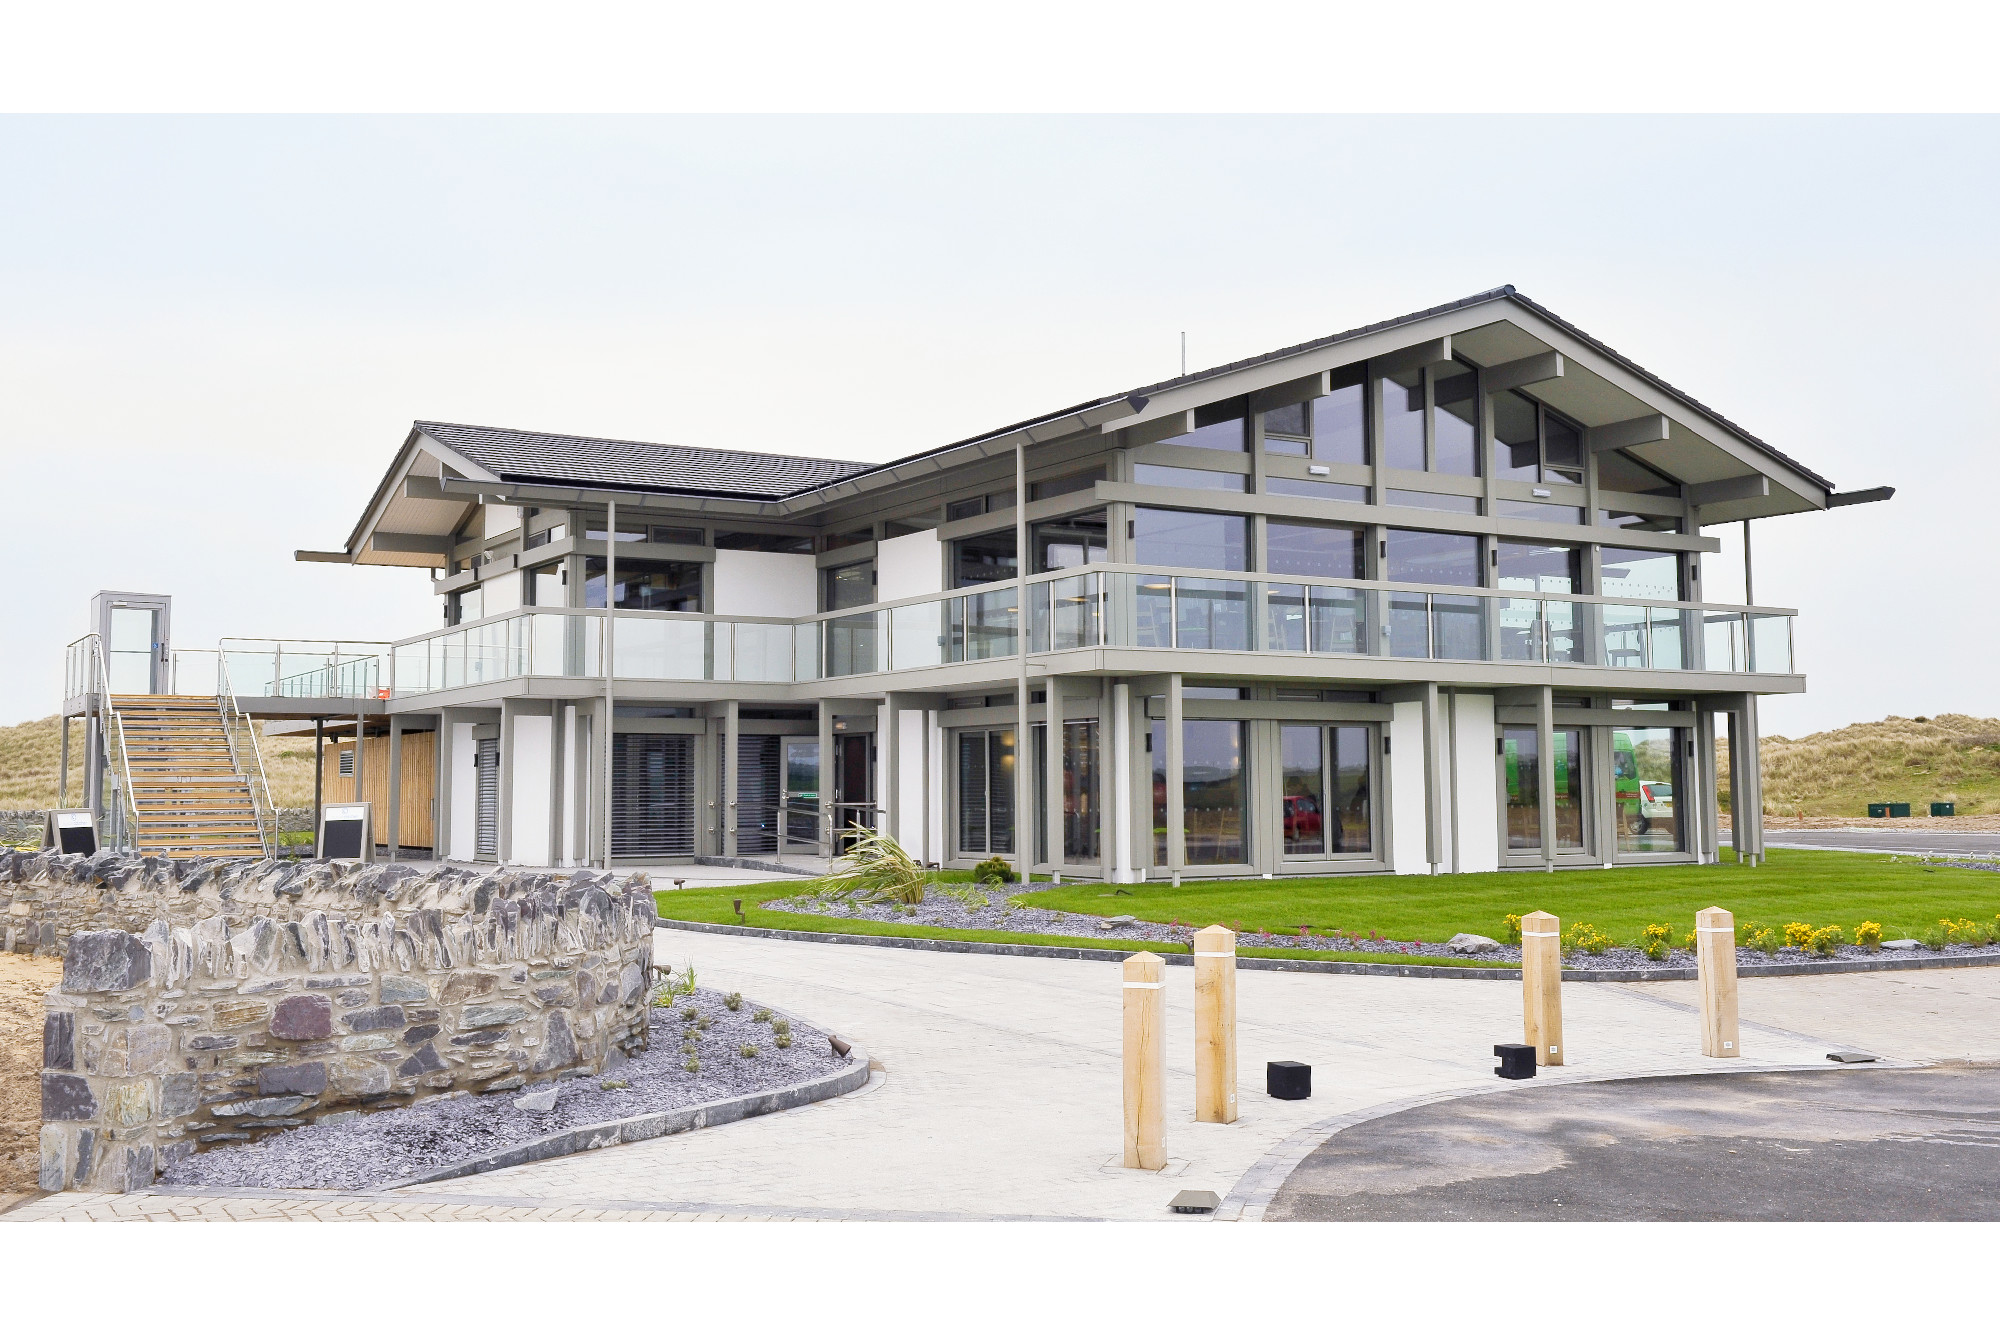 The Oyster Catcher restaurant in Anglesey with architectural photographs by Richard stonehouse ,architectural photographer.